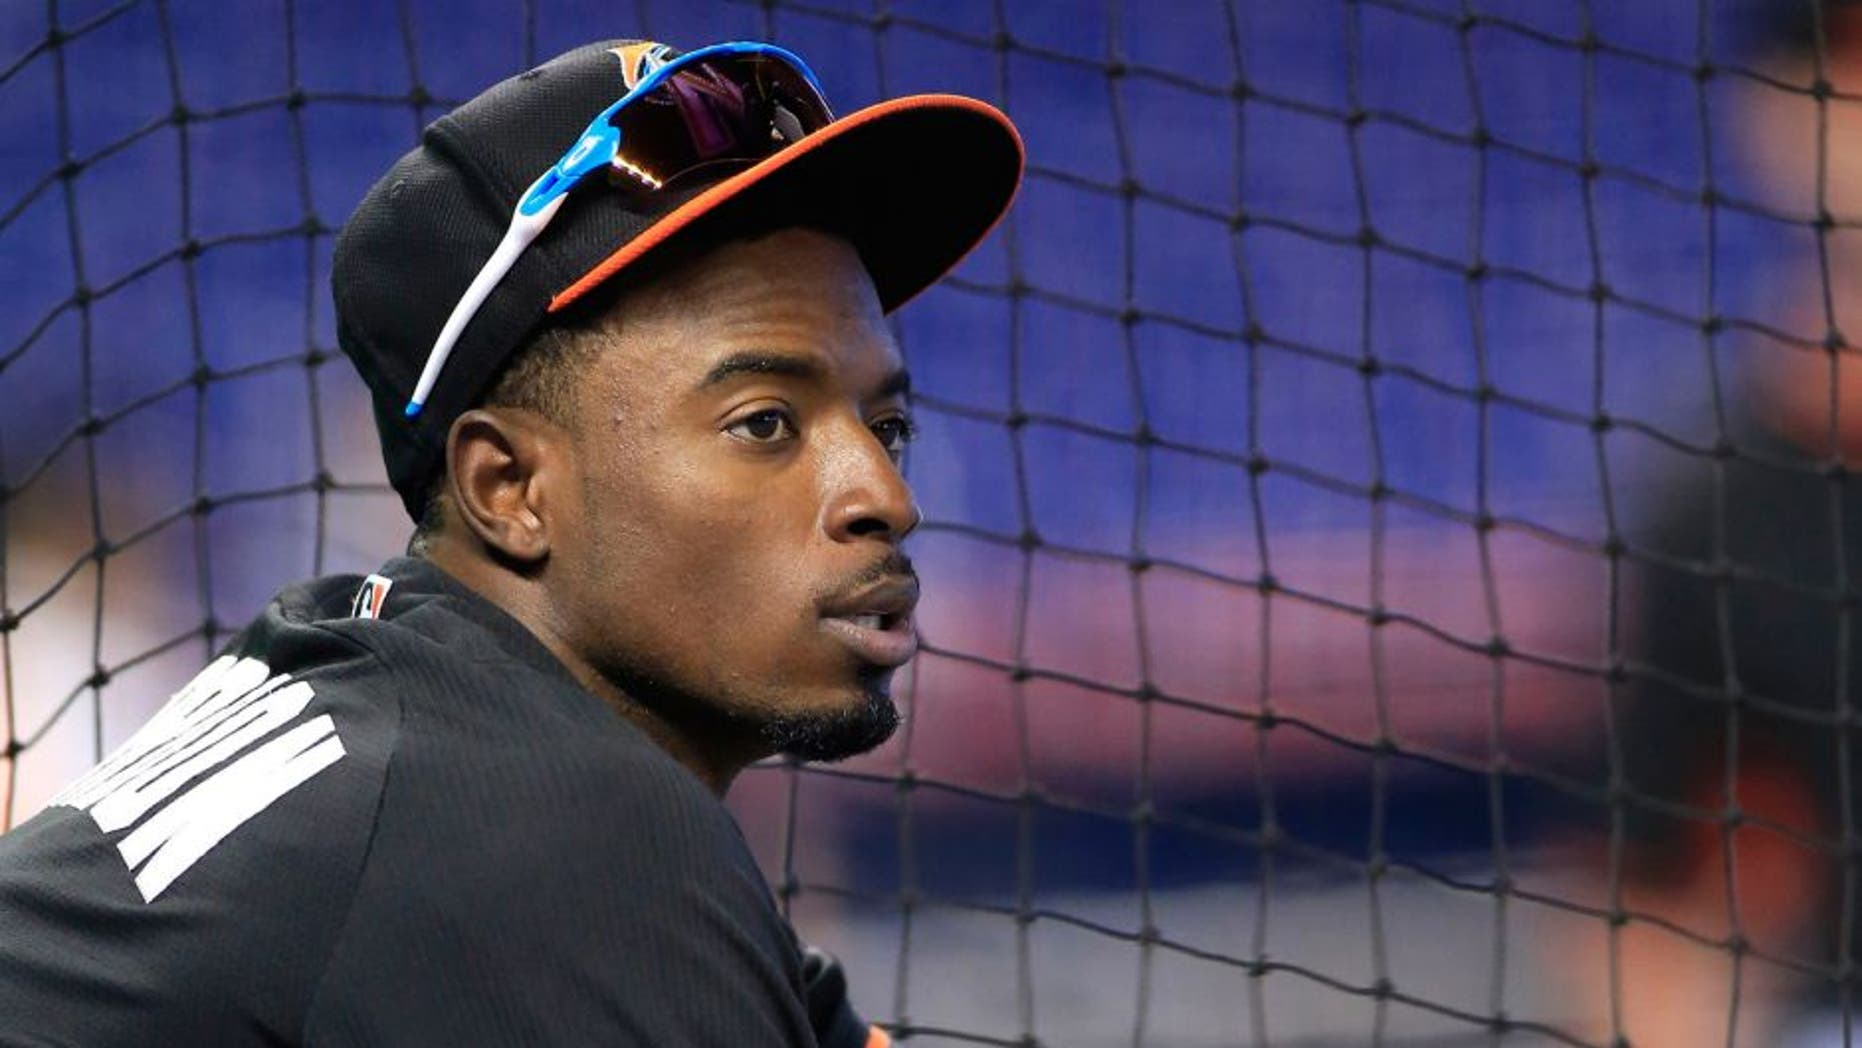 Sep 12, 2015; Miami, FL, USA; Miami Marlins second baseman Dee Gordon during batting practice before a game against the Washington Nationals at Marlins Park. Mandatory Credit: Robert Mayer-USA TODAY Sports